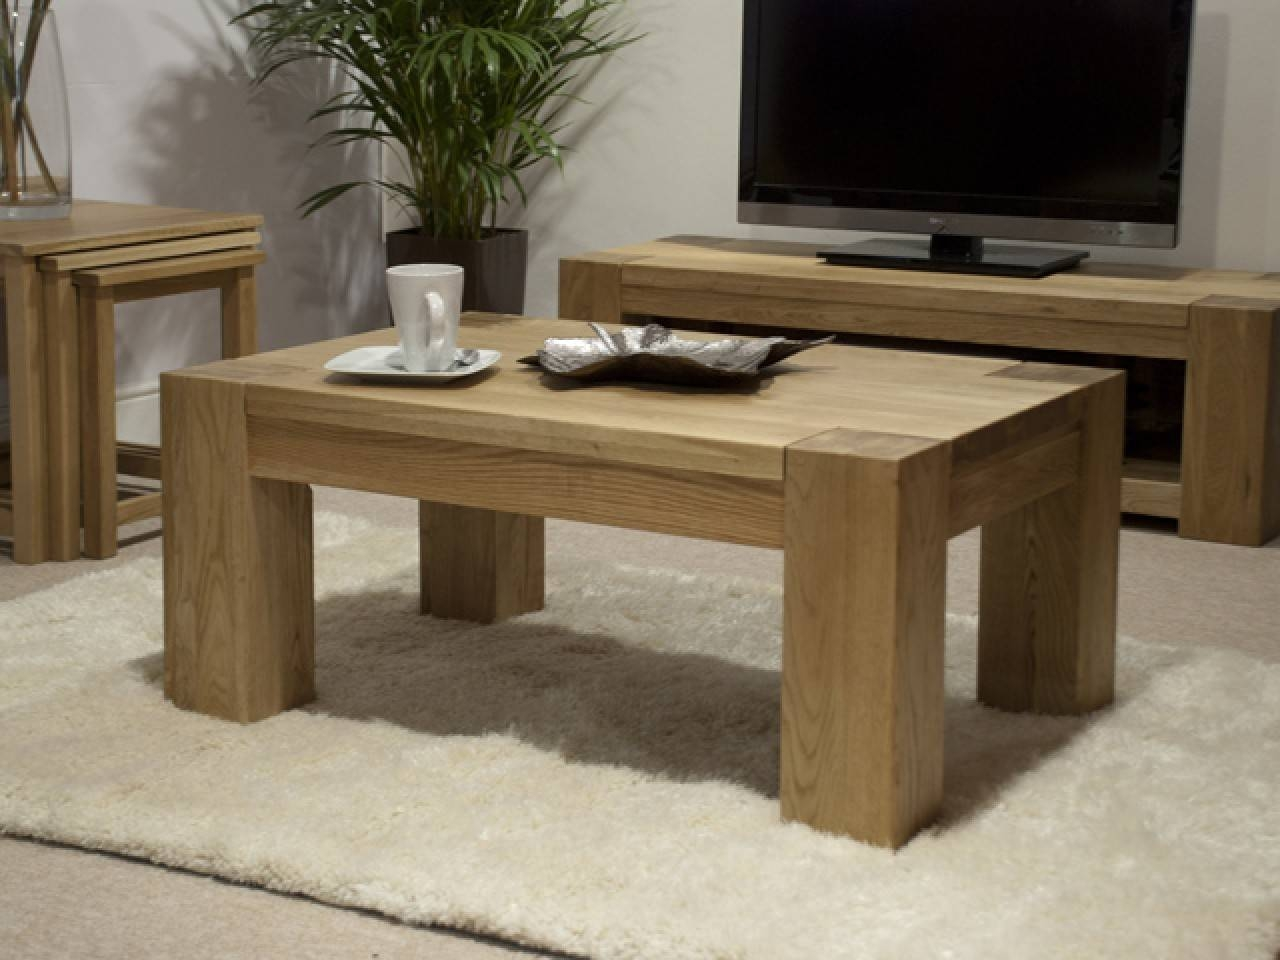 Rustic Oak Coffee Table Rectangular Square Tables Arizona intended for Square Oak Coffee Tables (Image 24 of 30)